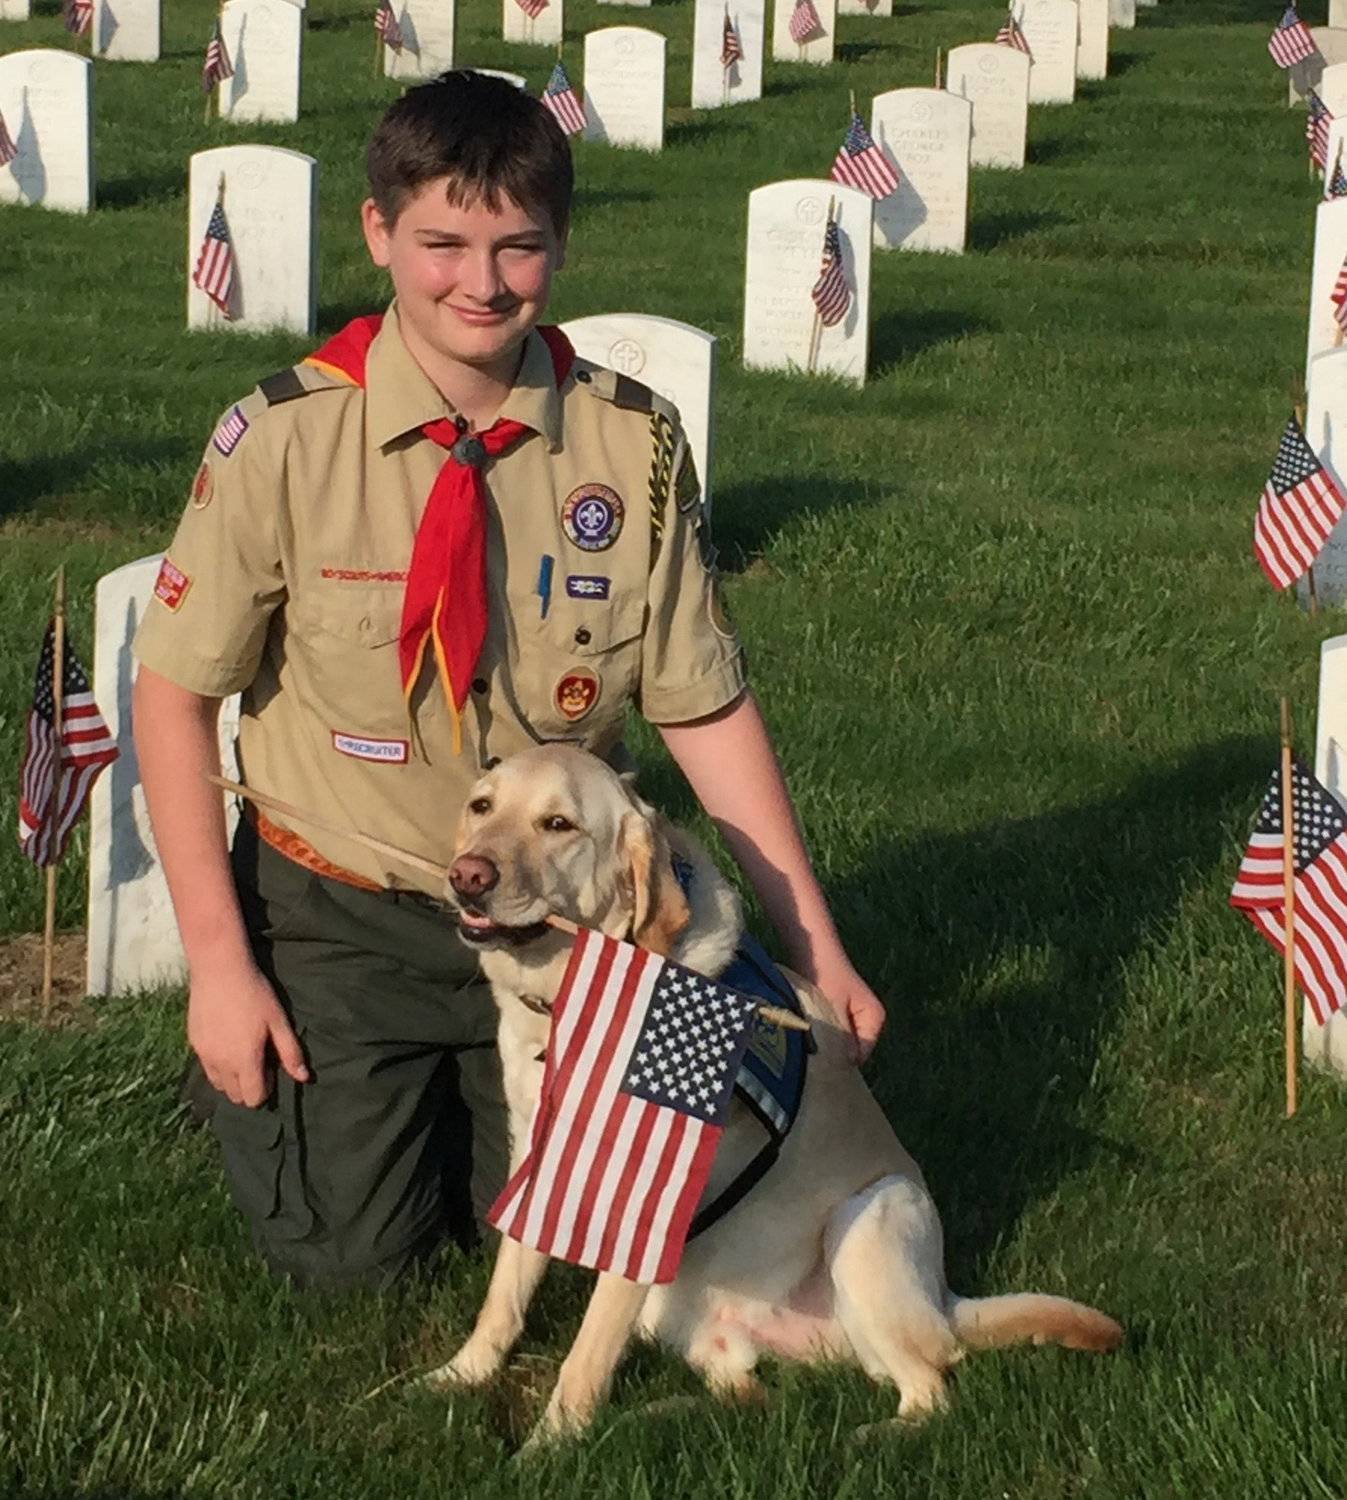 Luke is in the final stages of work for Eagle Scout rank. It is unlikely he would have gotten as far as quickly without Dragon's help and support.